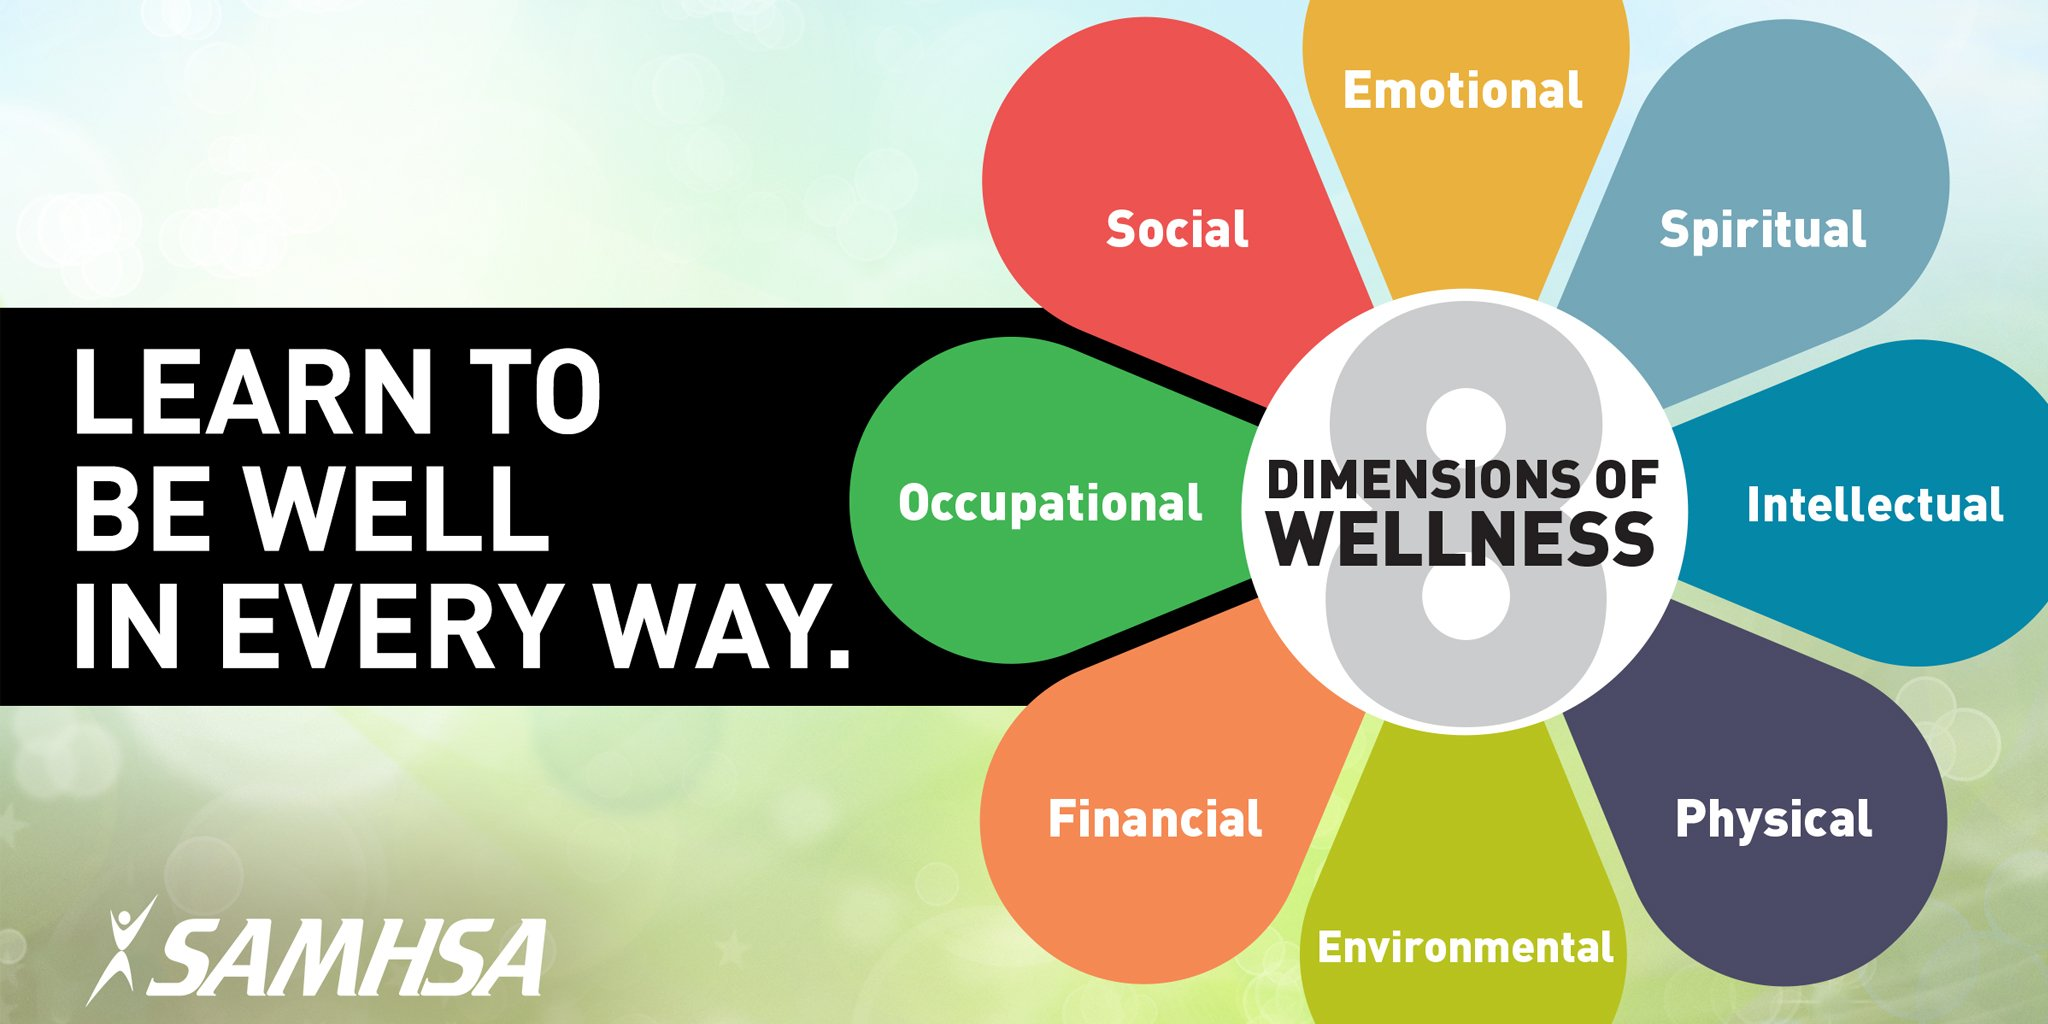 8 dimensions of health It is much more than just physical health, exercise, and nutrition wellness is multidimensional including: spiritual, physical, emotional, career, intellectual, environmental, social  wellness is a full integration and the pursuit of continued growth and balance in these seven dimensions of wellness.